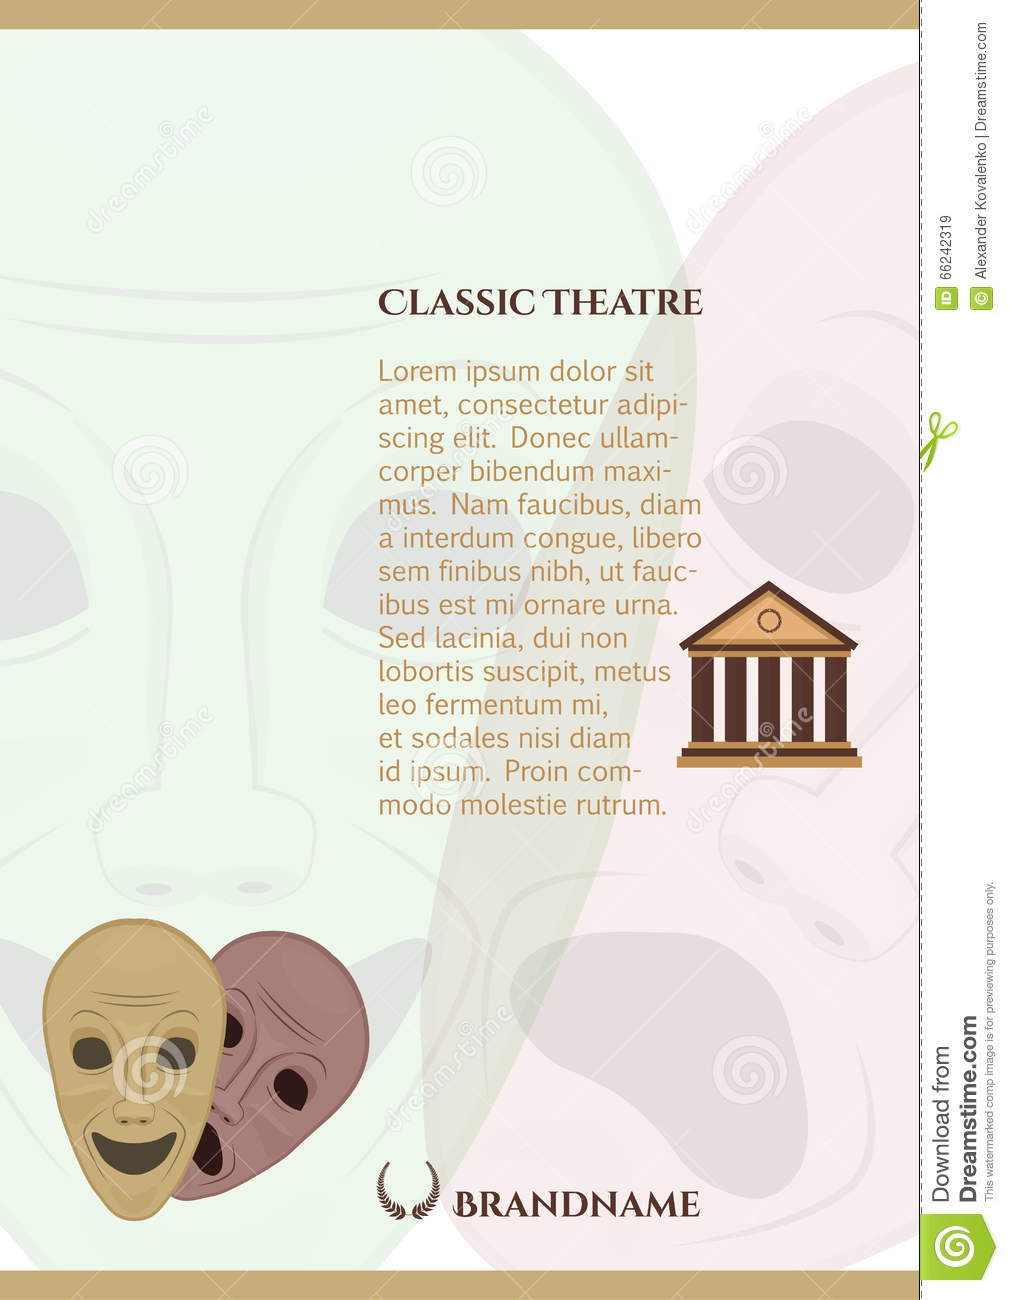 download greek comedy and tragedy masks pamphlet template stock vector illustration of greek